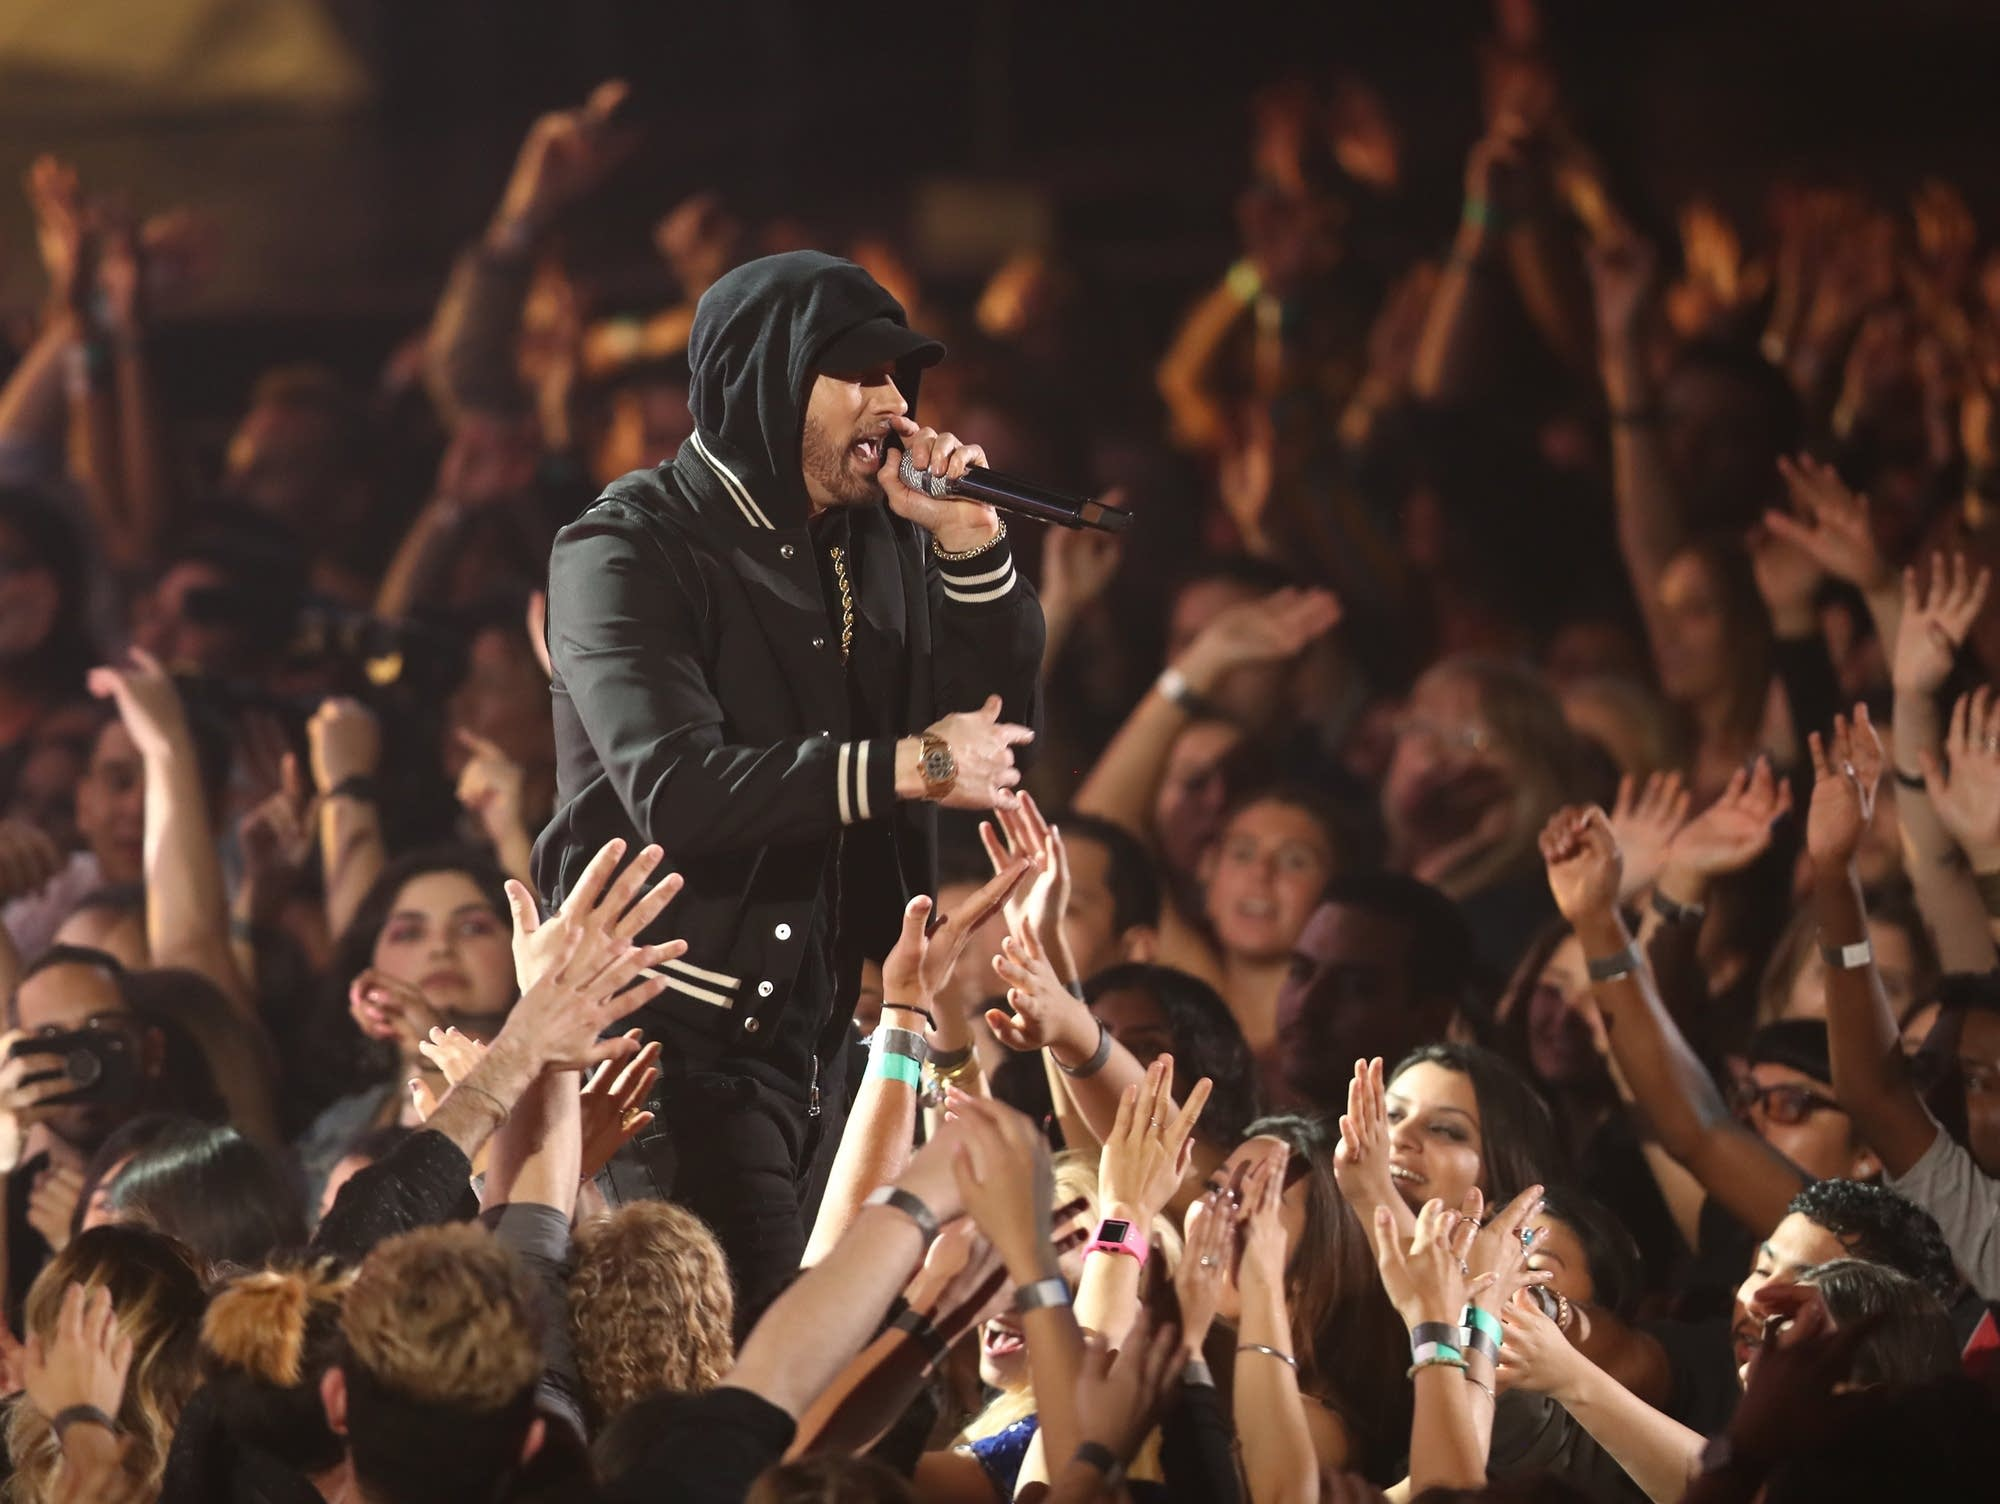 Eminem performs at the iHeartRadio Music Awards in March 2018.